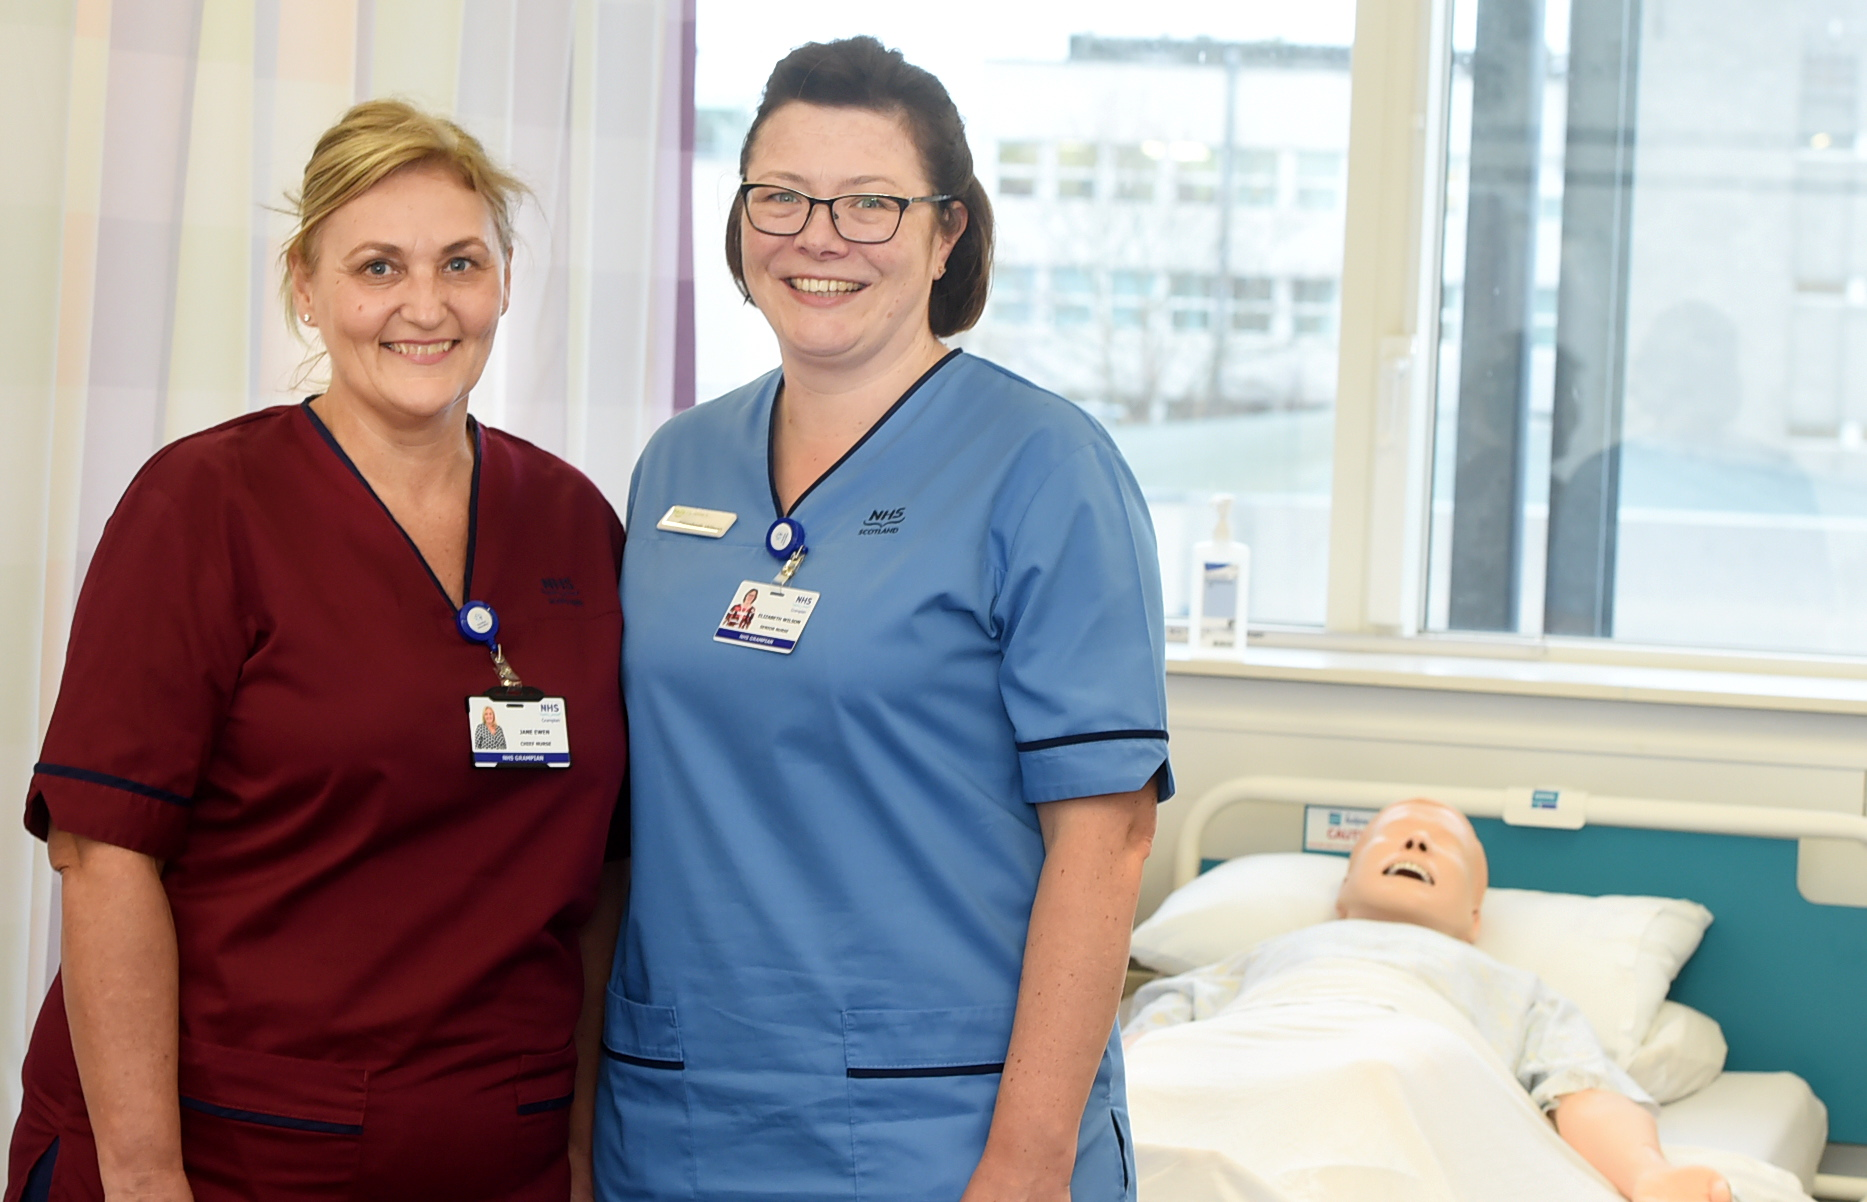 NHS Grampian has hailed the success of its latest Australian recruitment drive. Pictured are Jane Ewen, left, and Elizabeth Wilson, two of the senior nurses who went on the trip.